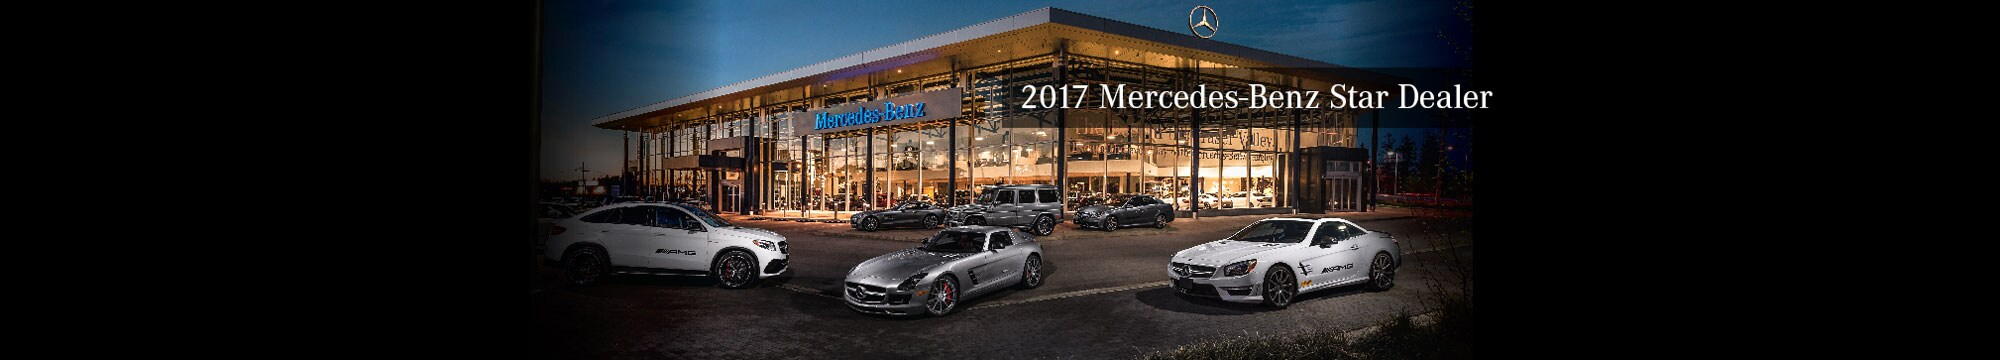 the class highlights strongerthantime passenger g benz mercedes road new ny en vehicles cars dealers on image presents in